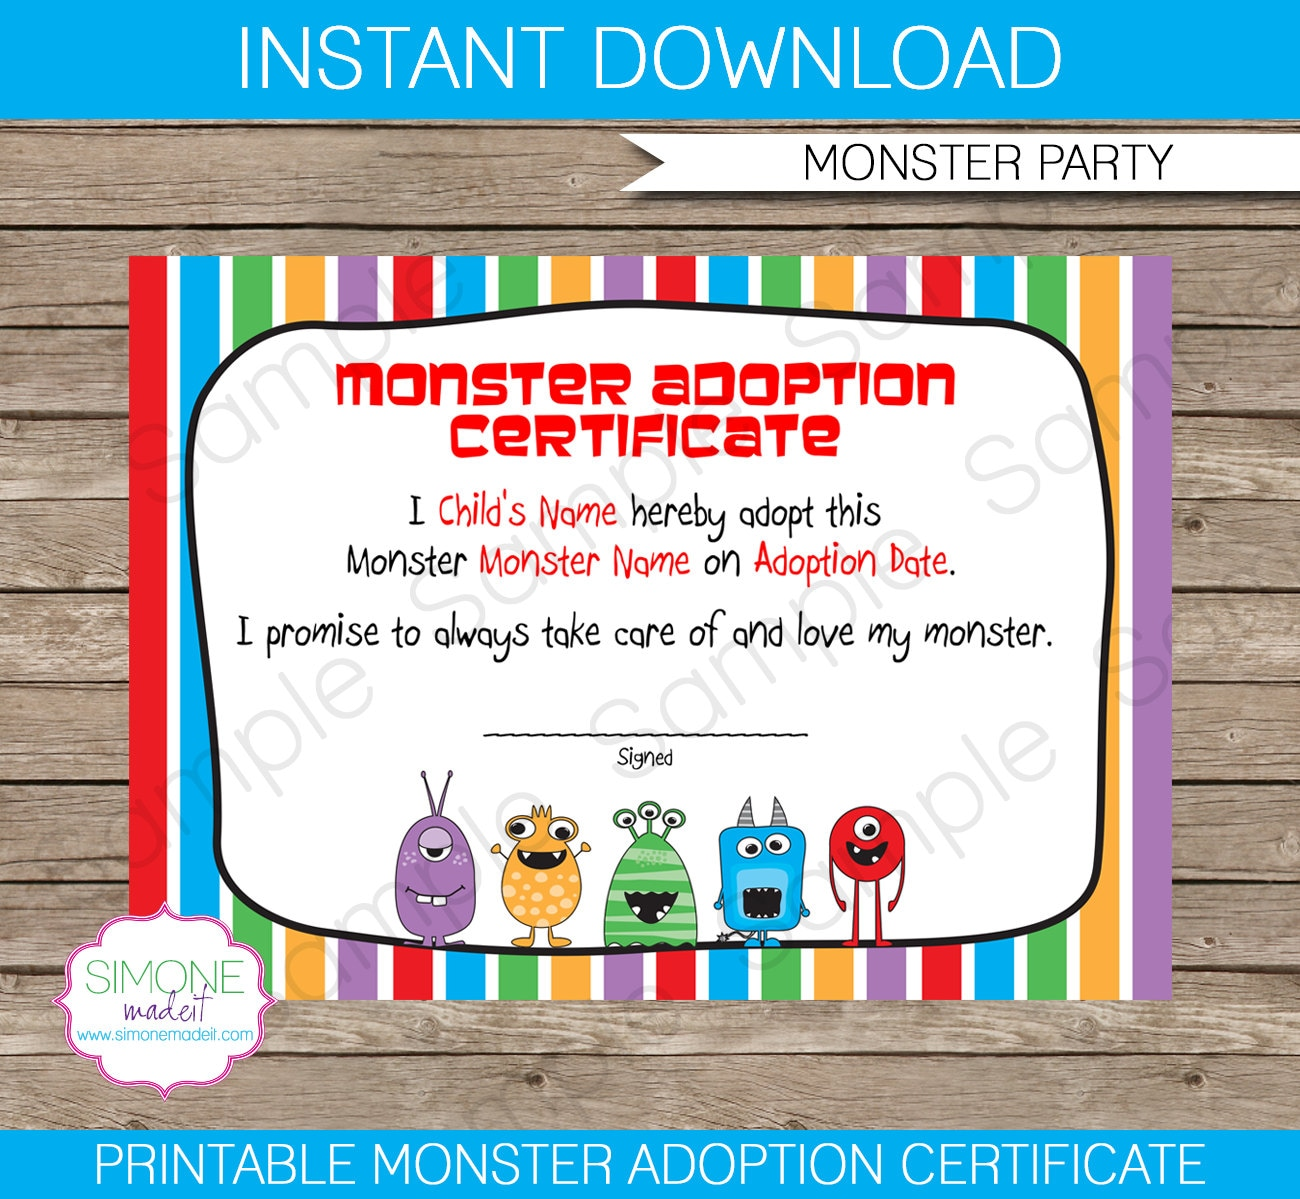 Monster adoption certificate instant download printable zoom 1betcityfo Gallery